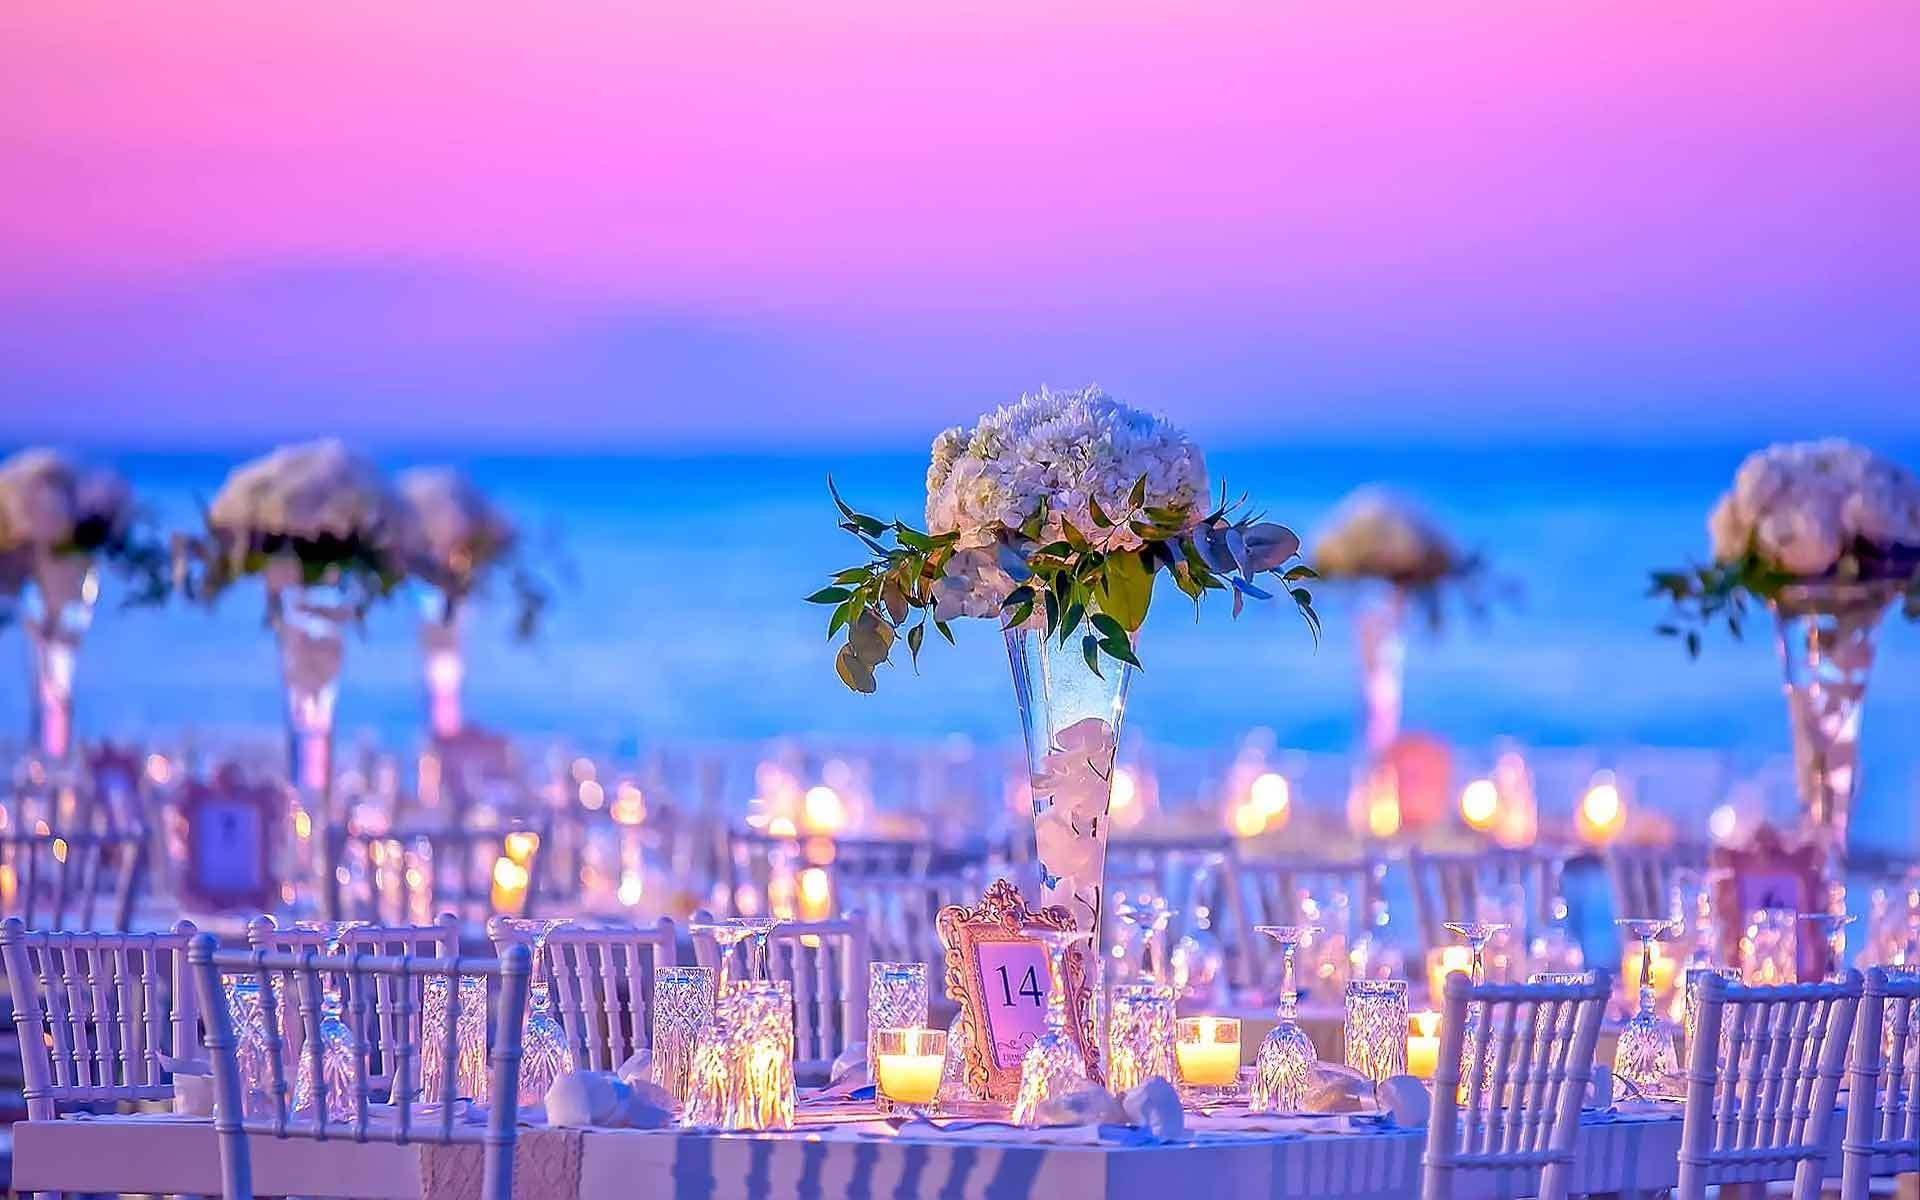 Tall-vases-with-white-hydrangeas-and-greenery-for-a-beach-style-wedding